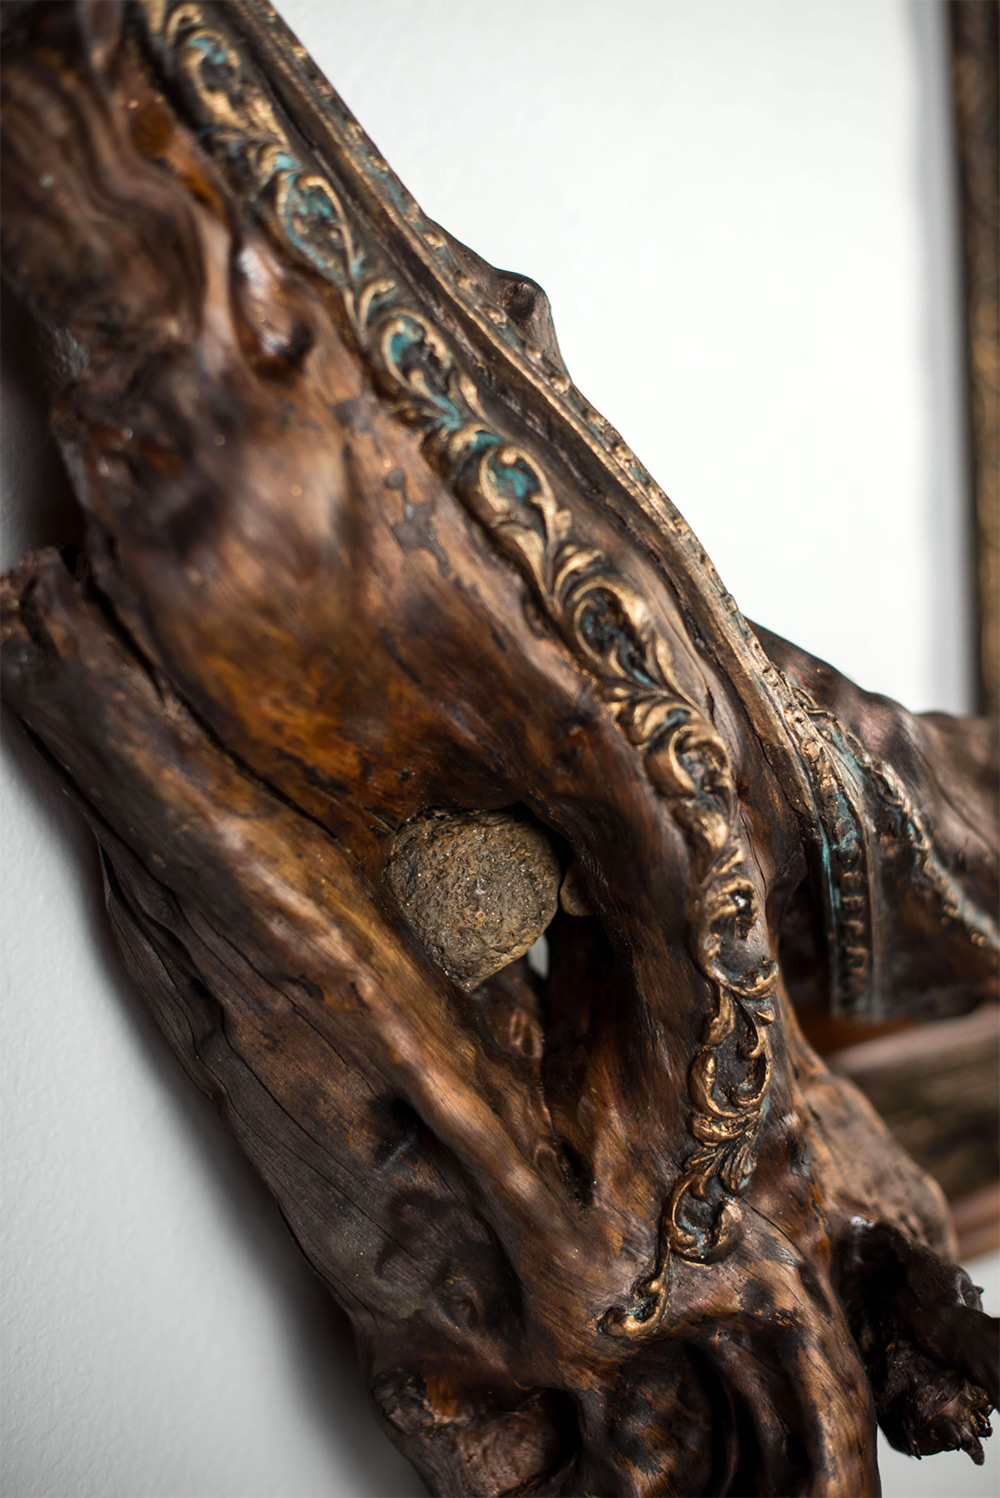 Twisted Tree Branches Fused with Ornate Picture Frames by Darryl Cox  Colossal